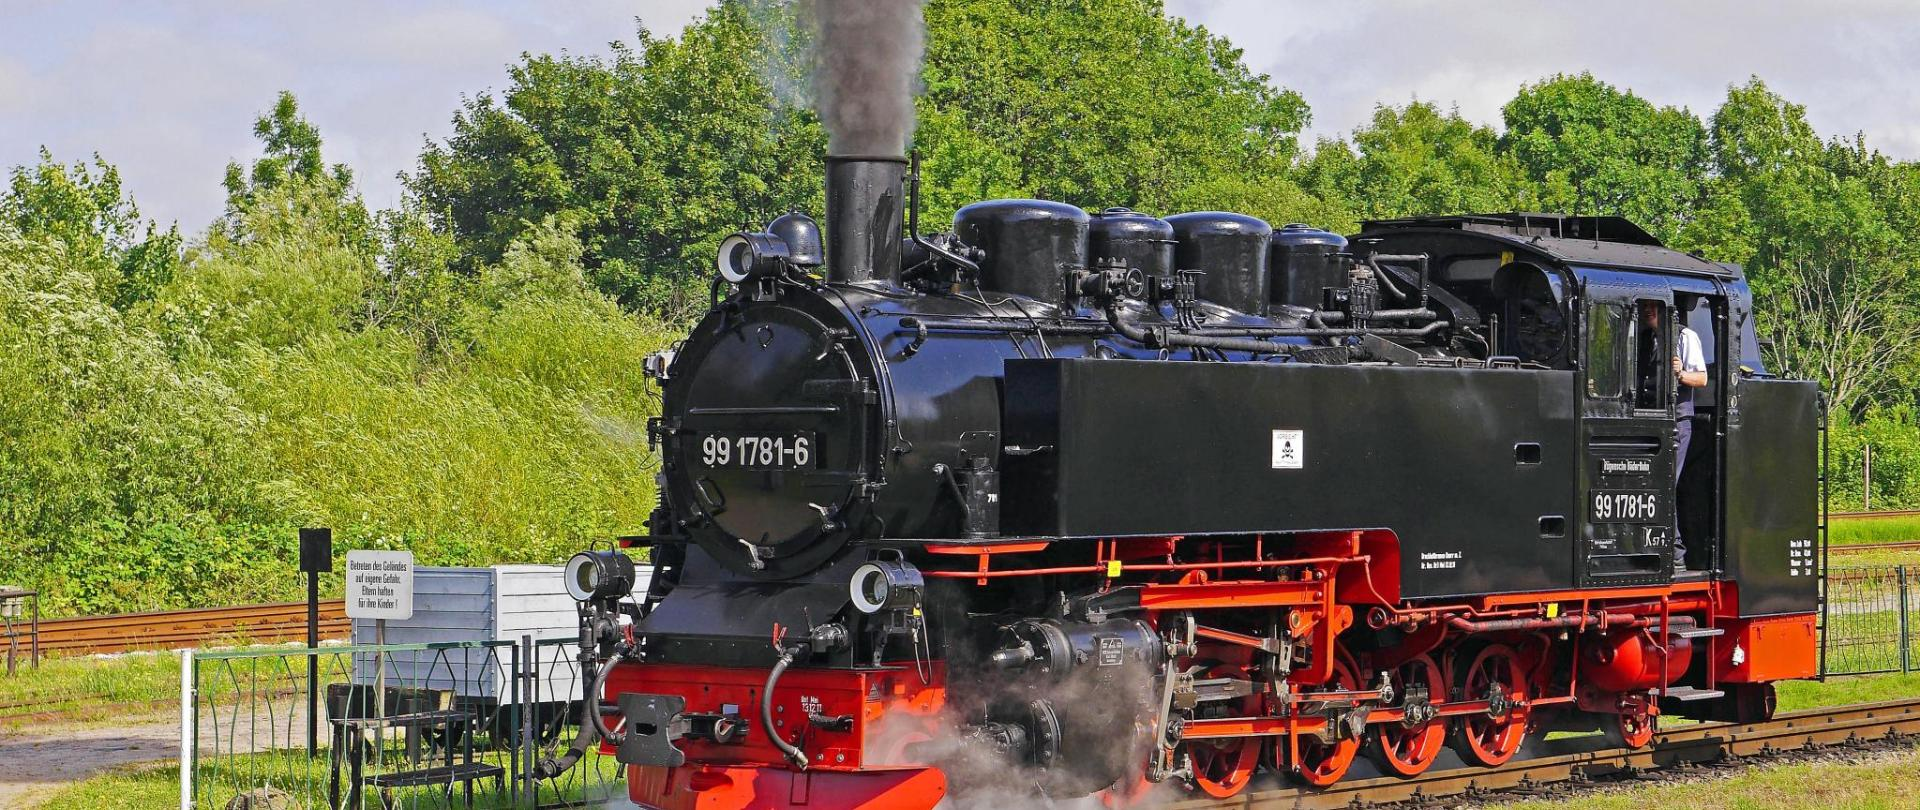 steam-locomotive-3827808.jpg